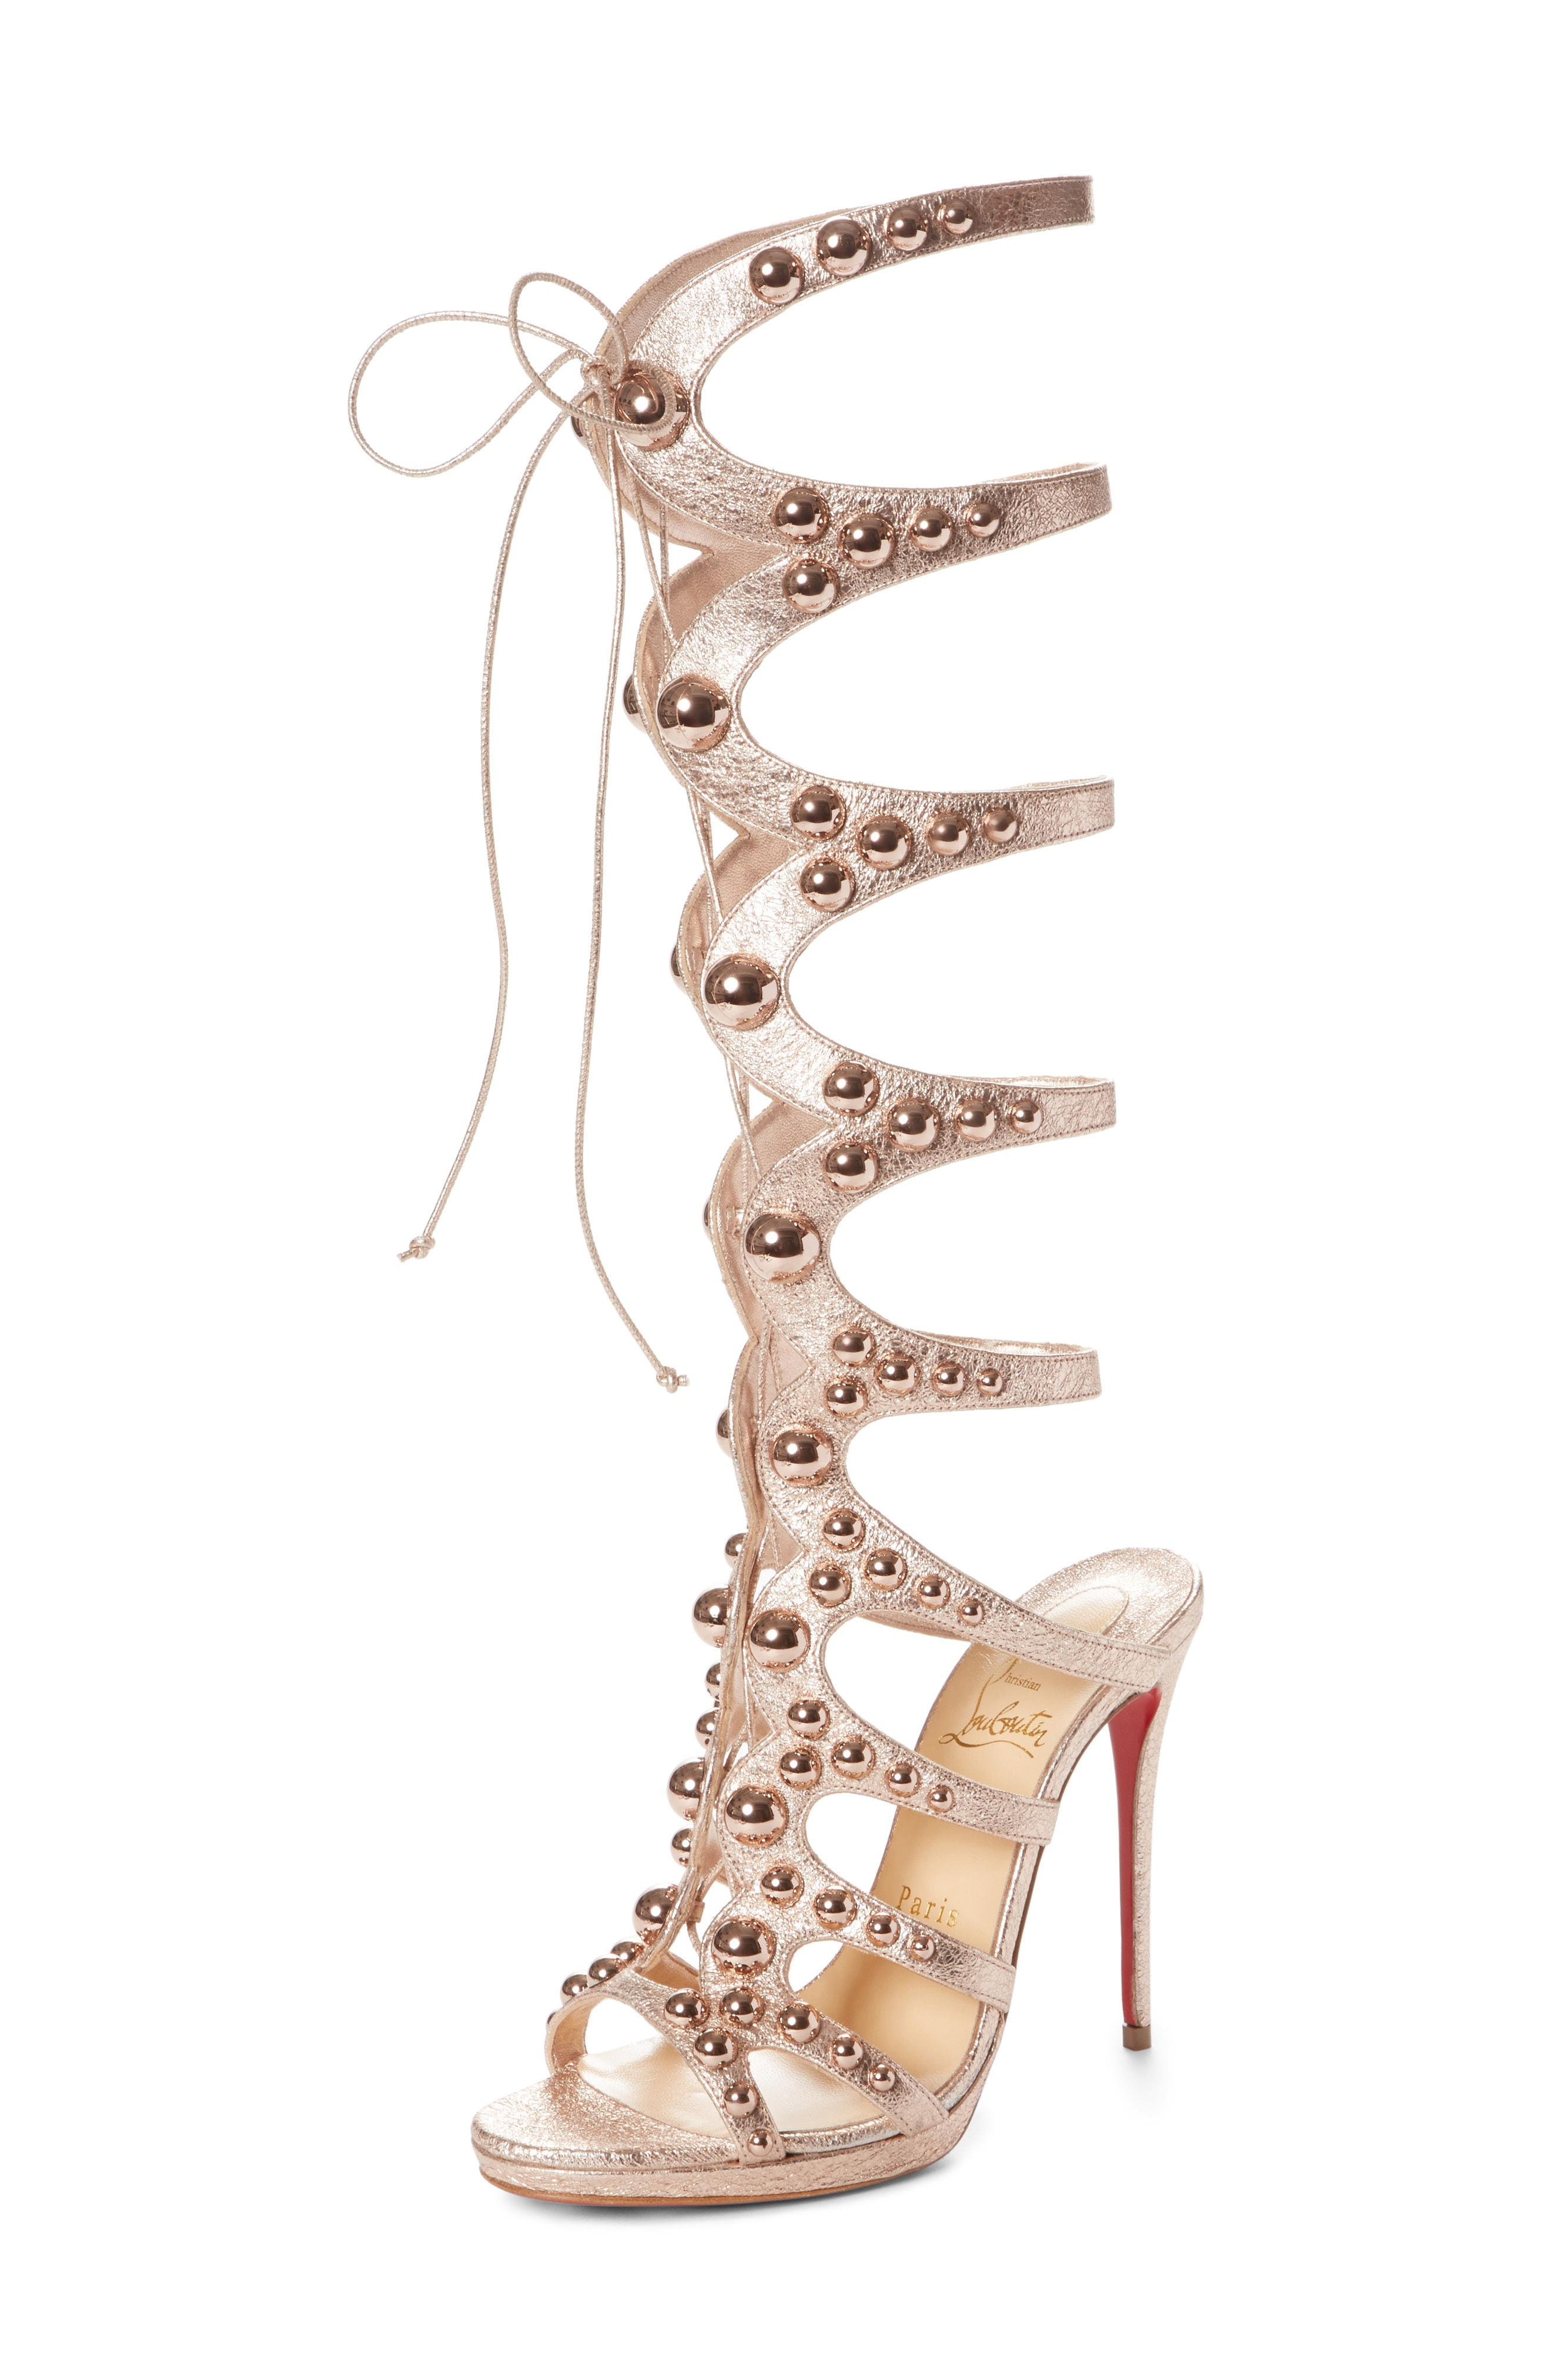 407ceff3a9e8 Christian Louboutin Amazoutiful 120Mm Leather Gladiator Red Sole Sandal In  Rose